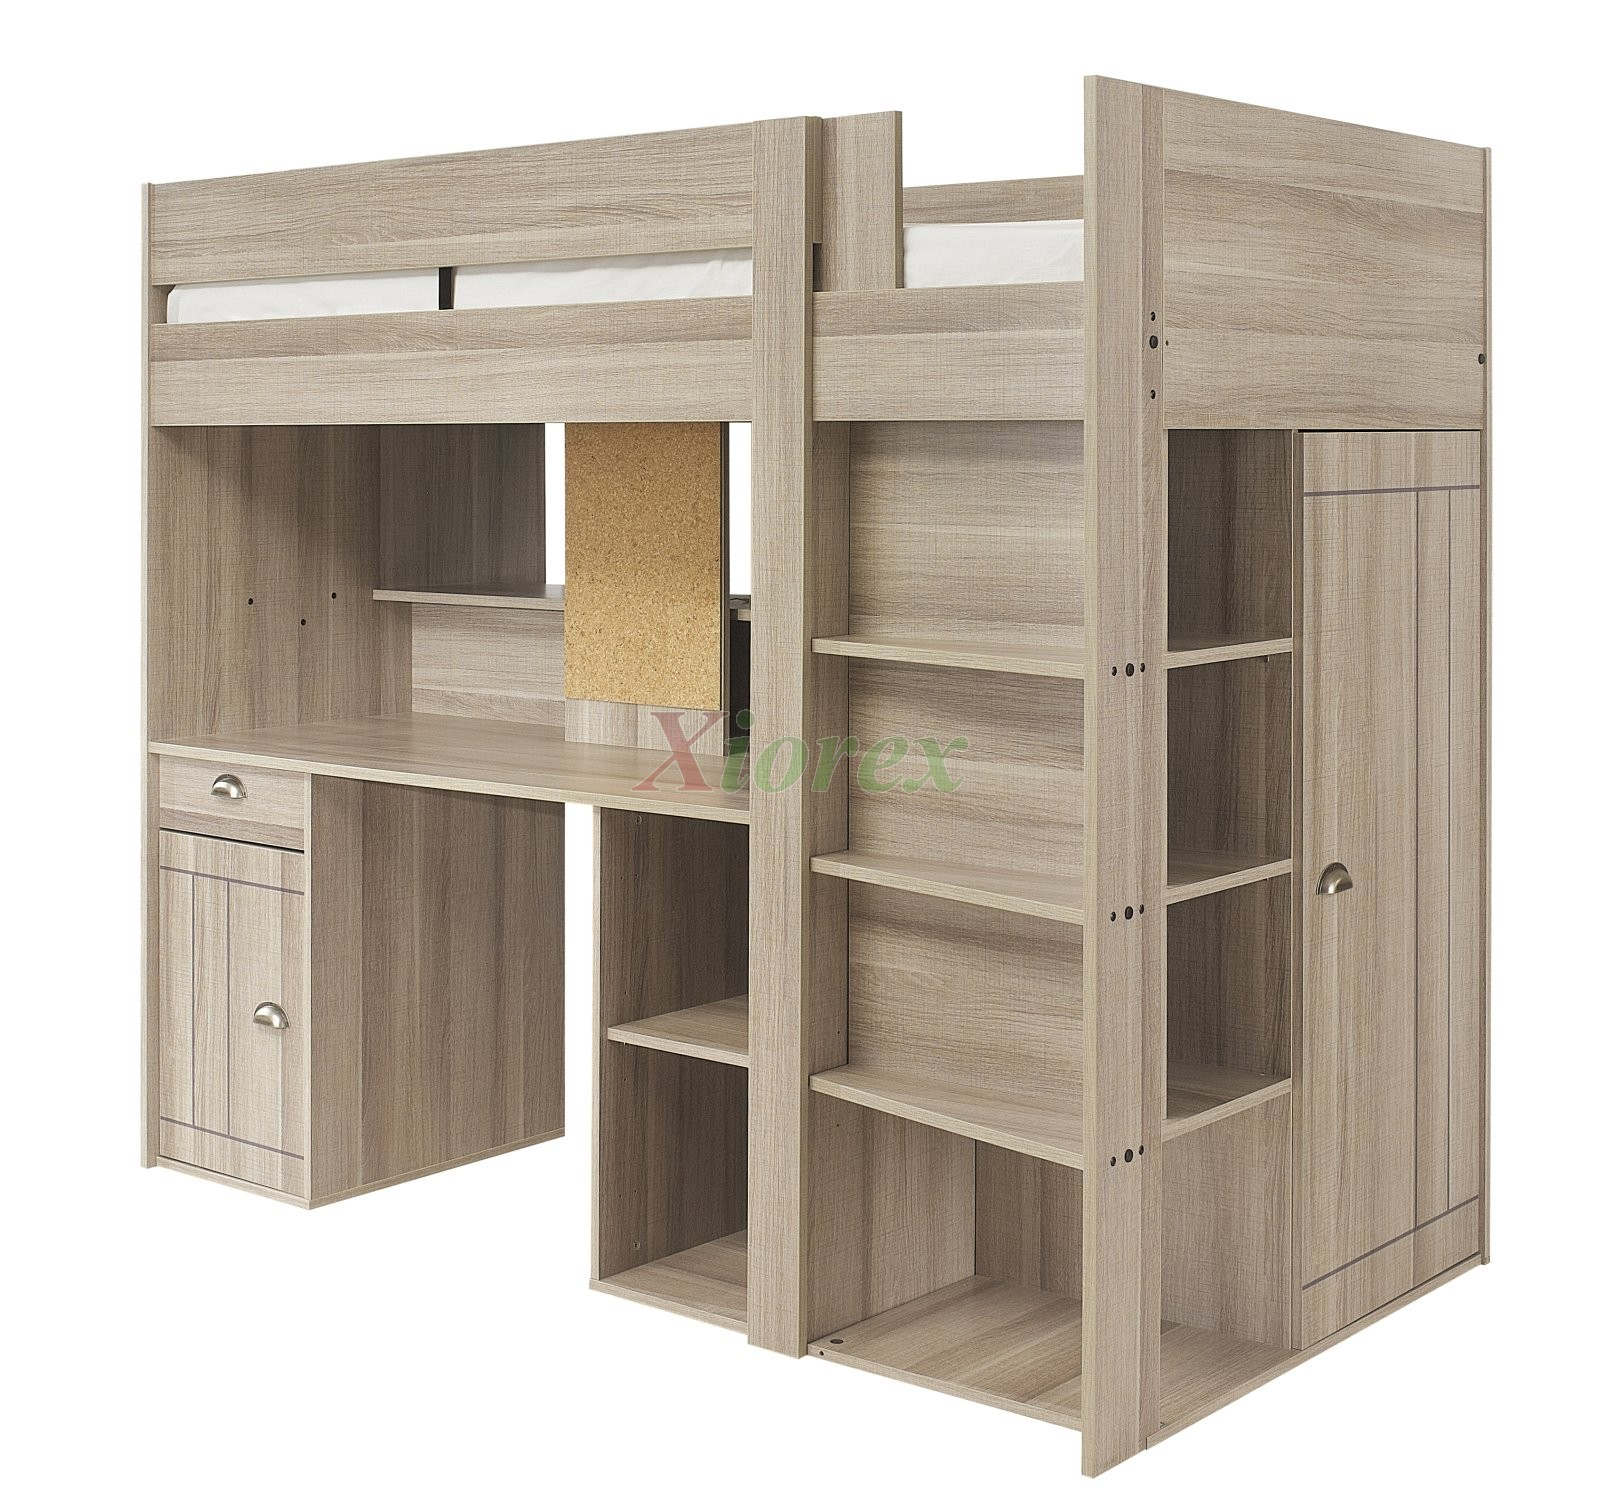 Bedroom loft for teens - Largo Loft Bunk Bed With Desk Closet And Storage By Gautier Xiorex